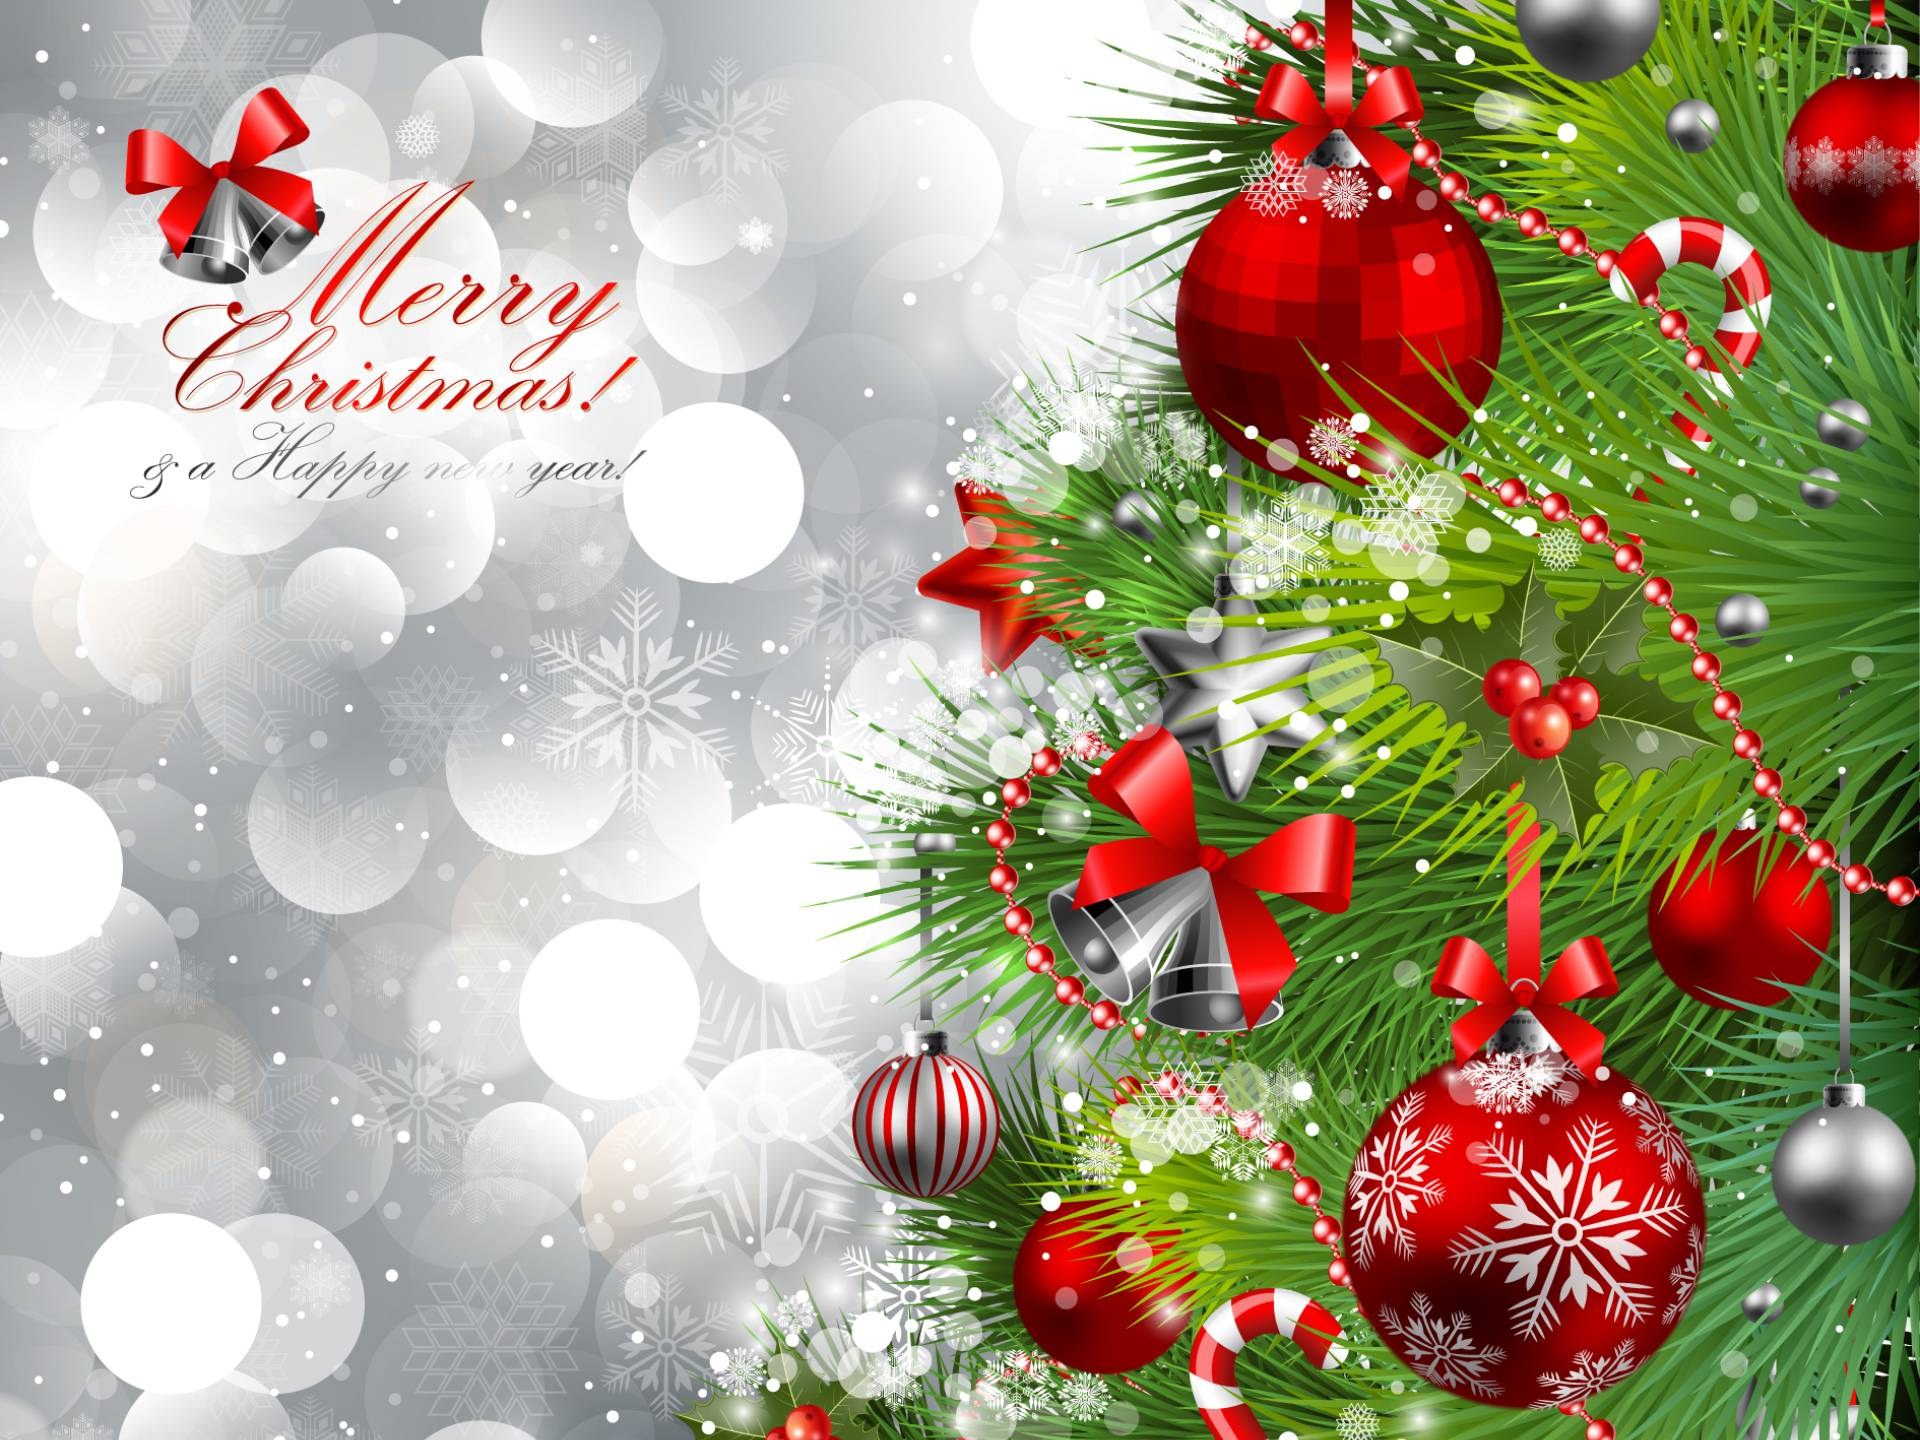 Wallpapers of merry christmas wallpaper cave for Holiday themed facebook cover photos